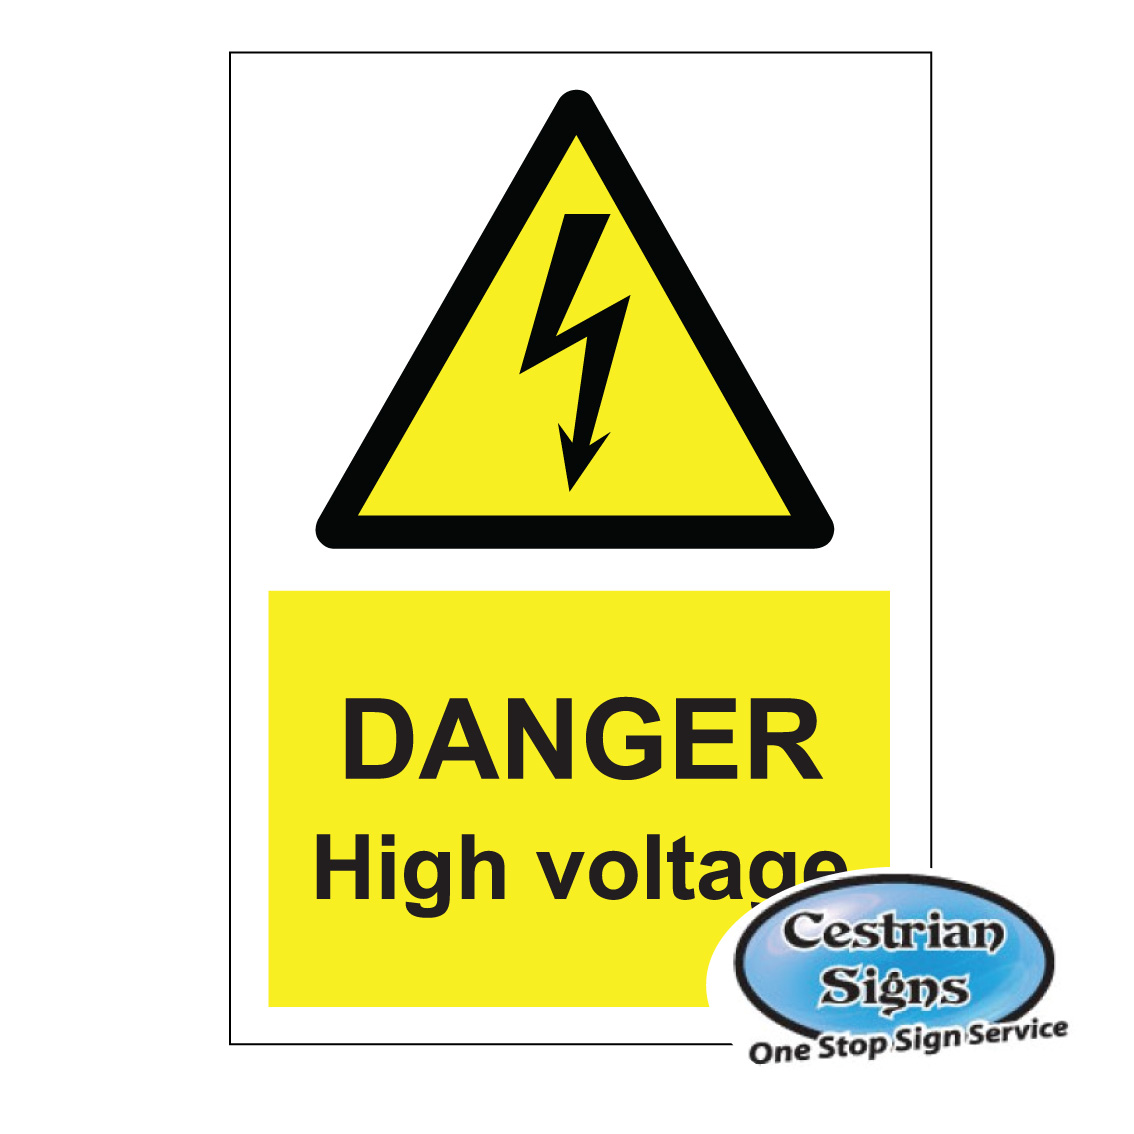 Construction Site Danger Electricity Safety Signs